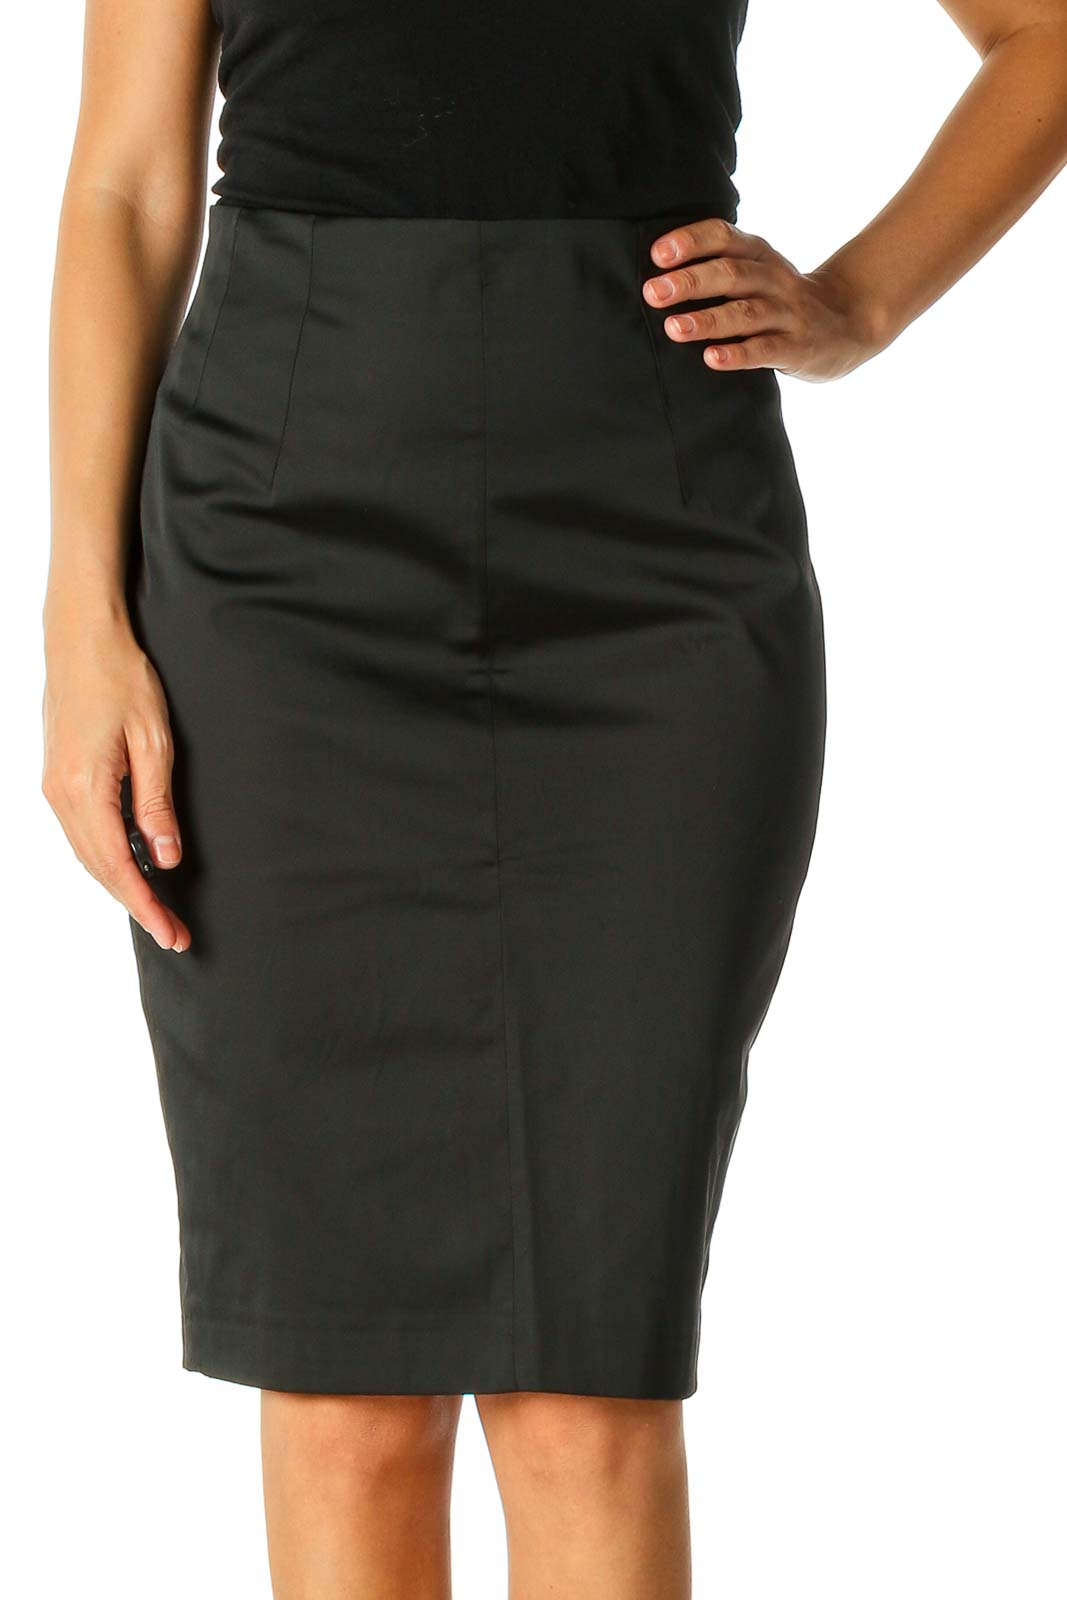 Black Solid Classic Pencil Skirt Front